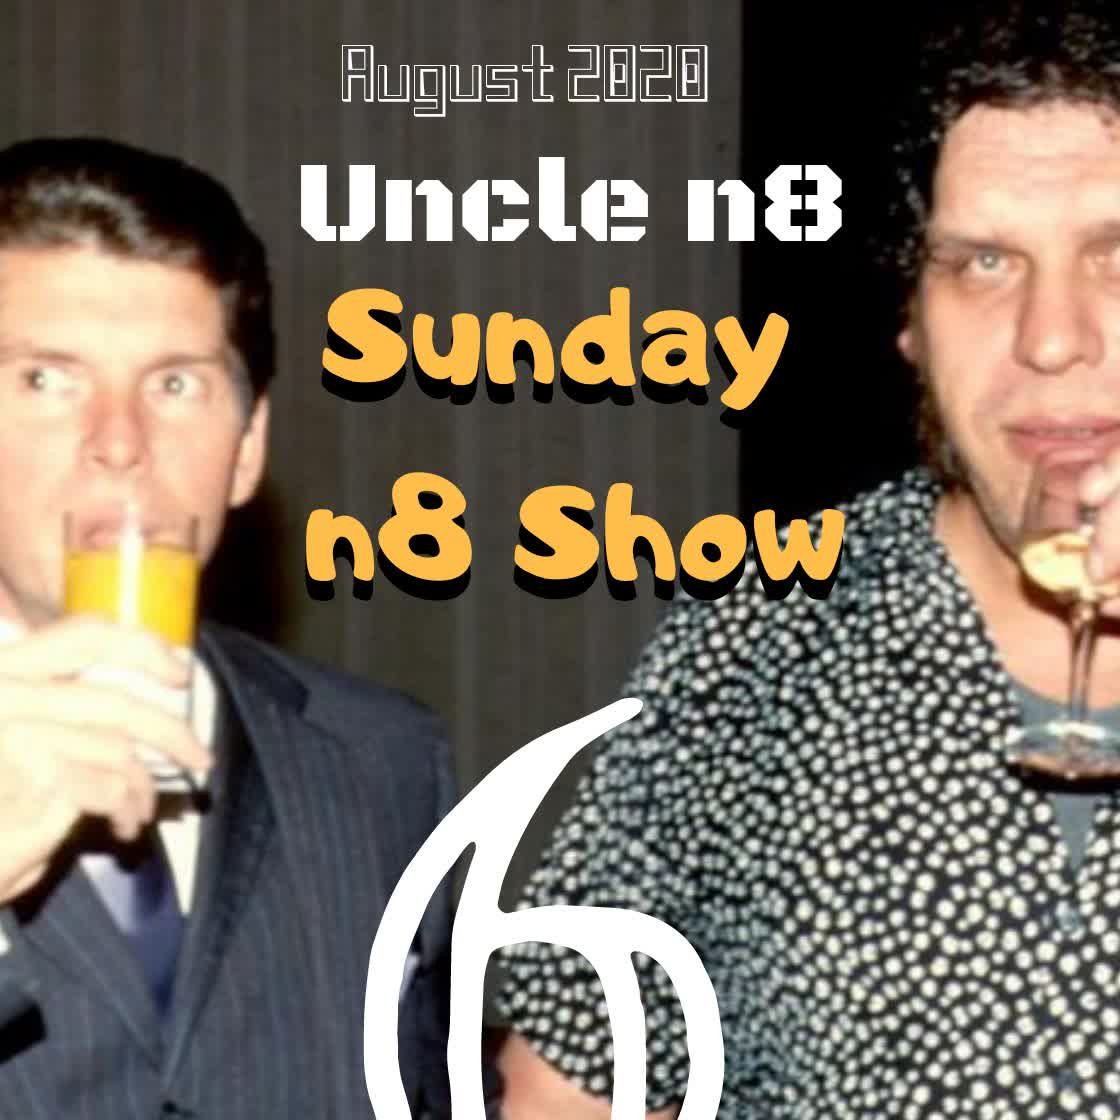 Sunday n8 Show :: Volume 6